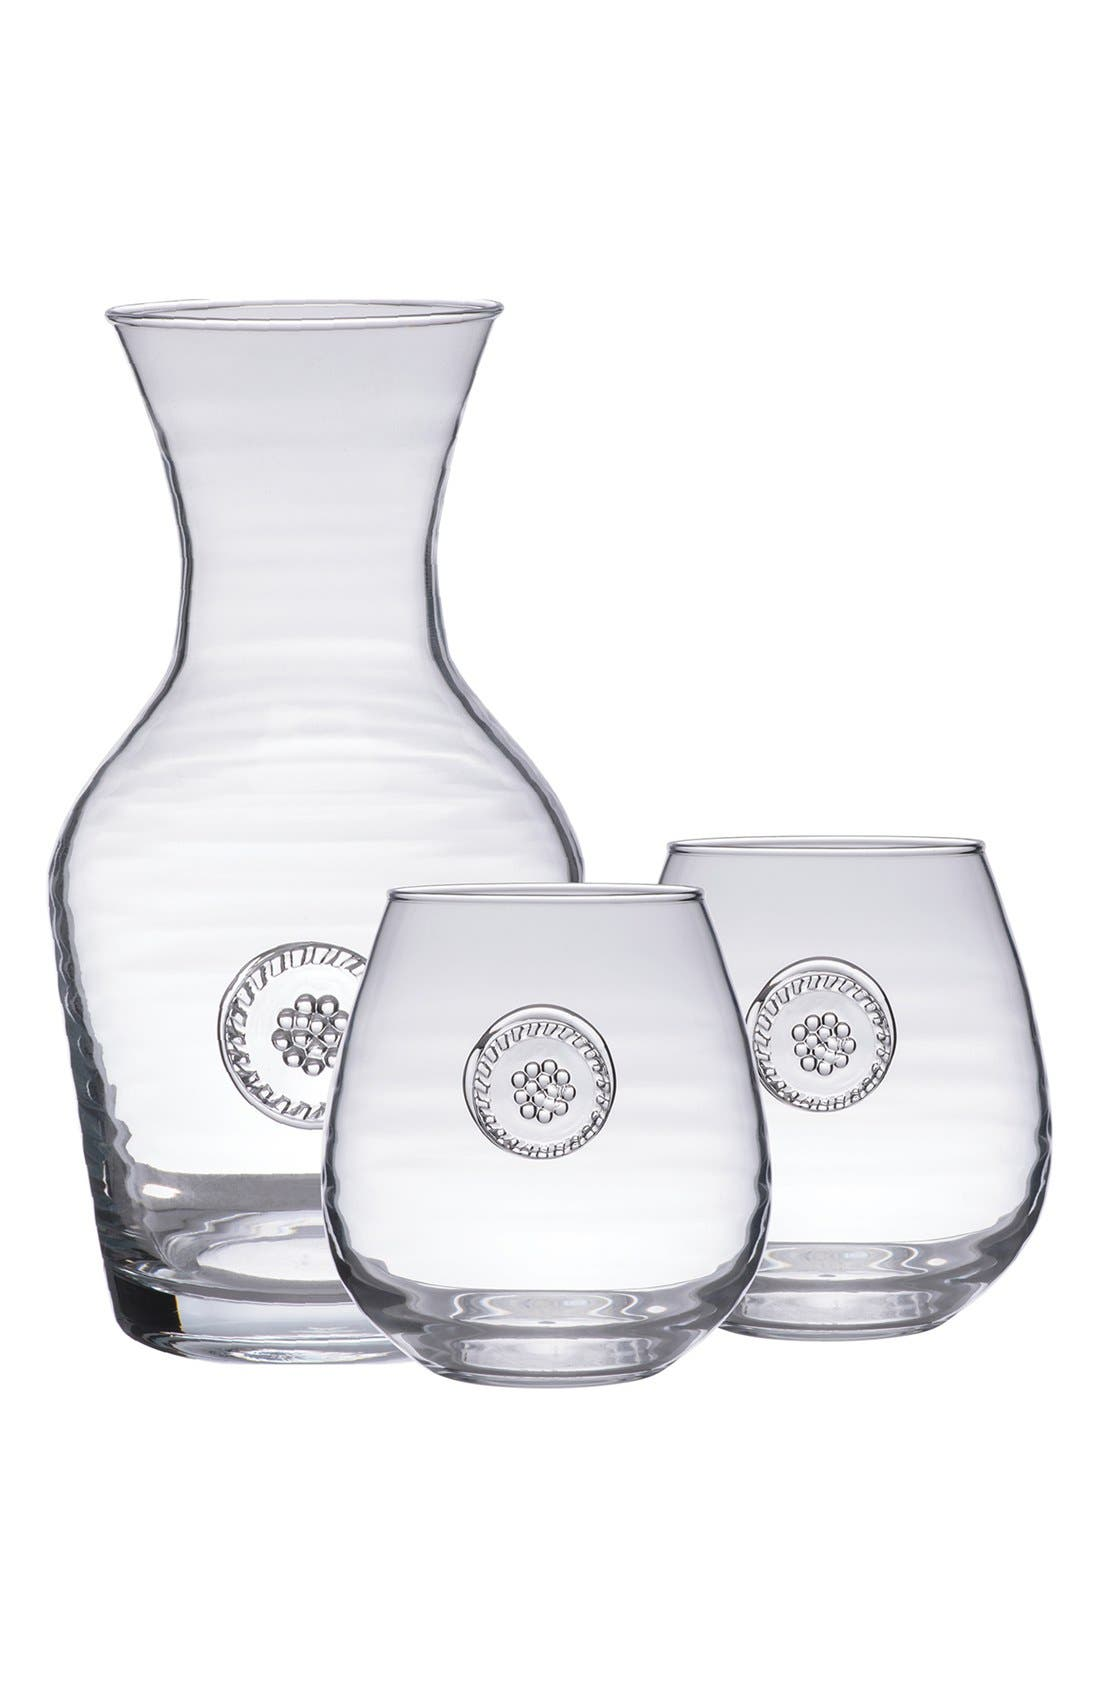 Main Image - Juliska 'Berry and Thread' Carafe & Stemless Red Wine Glasses